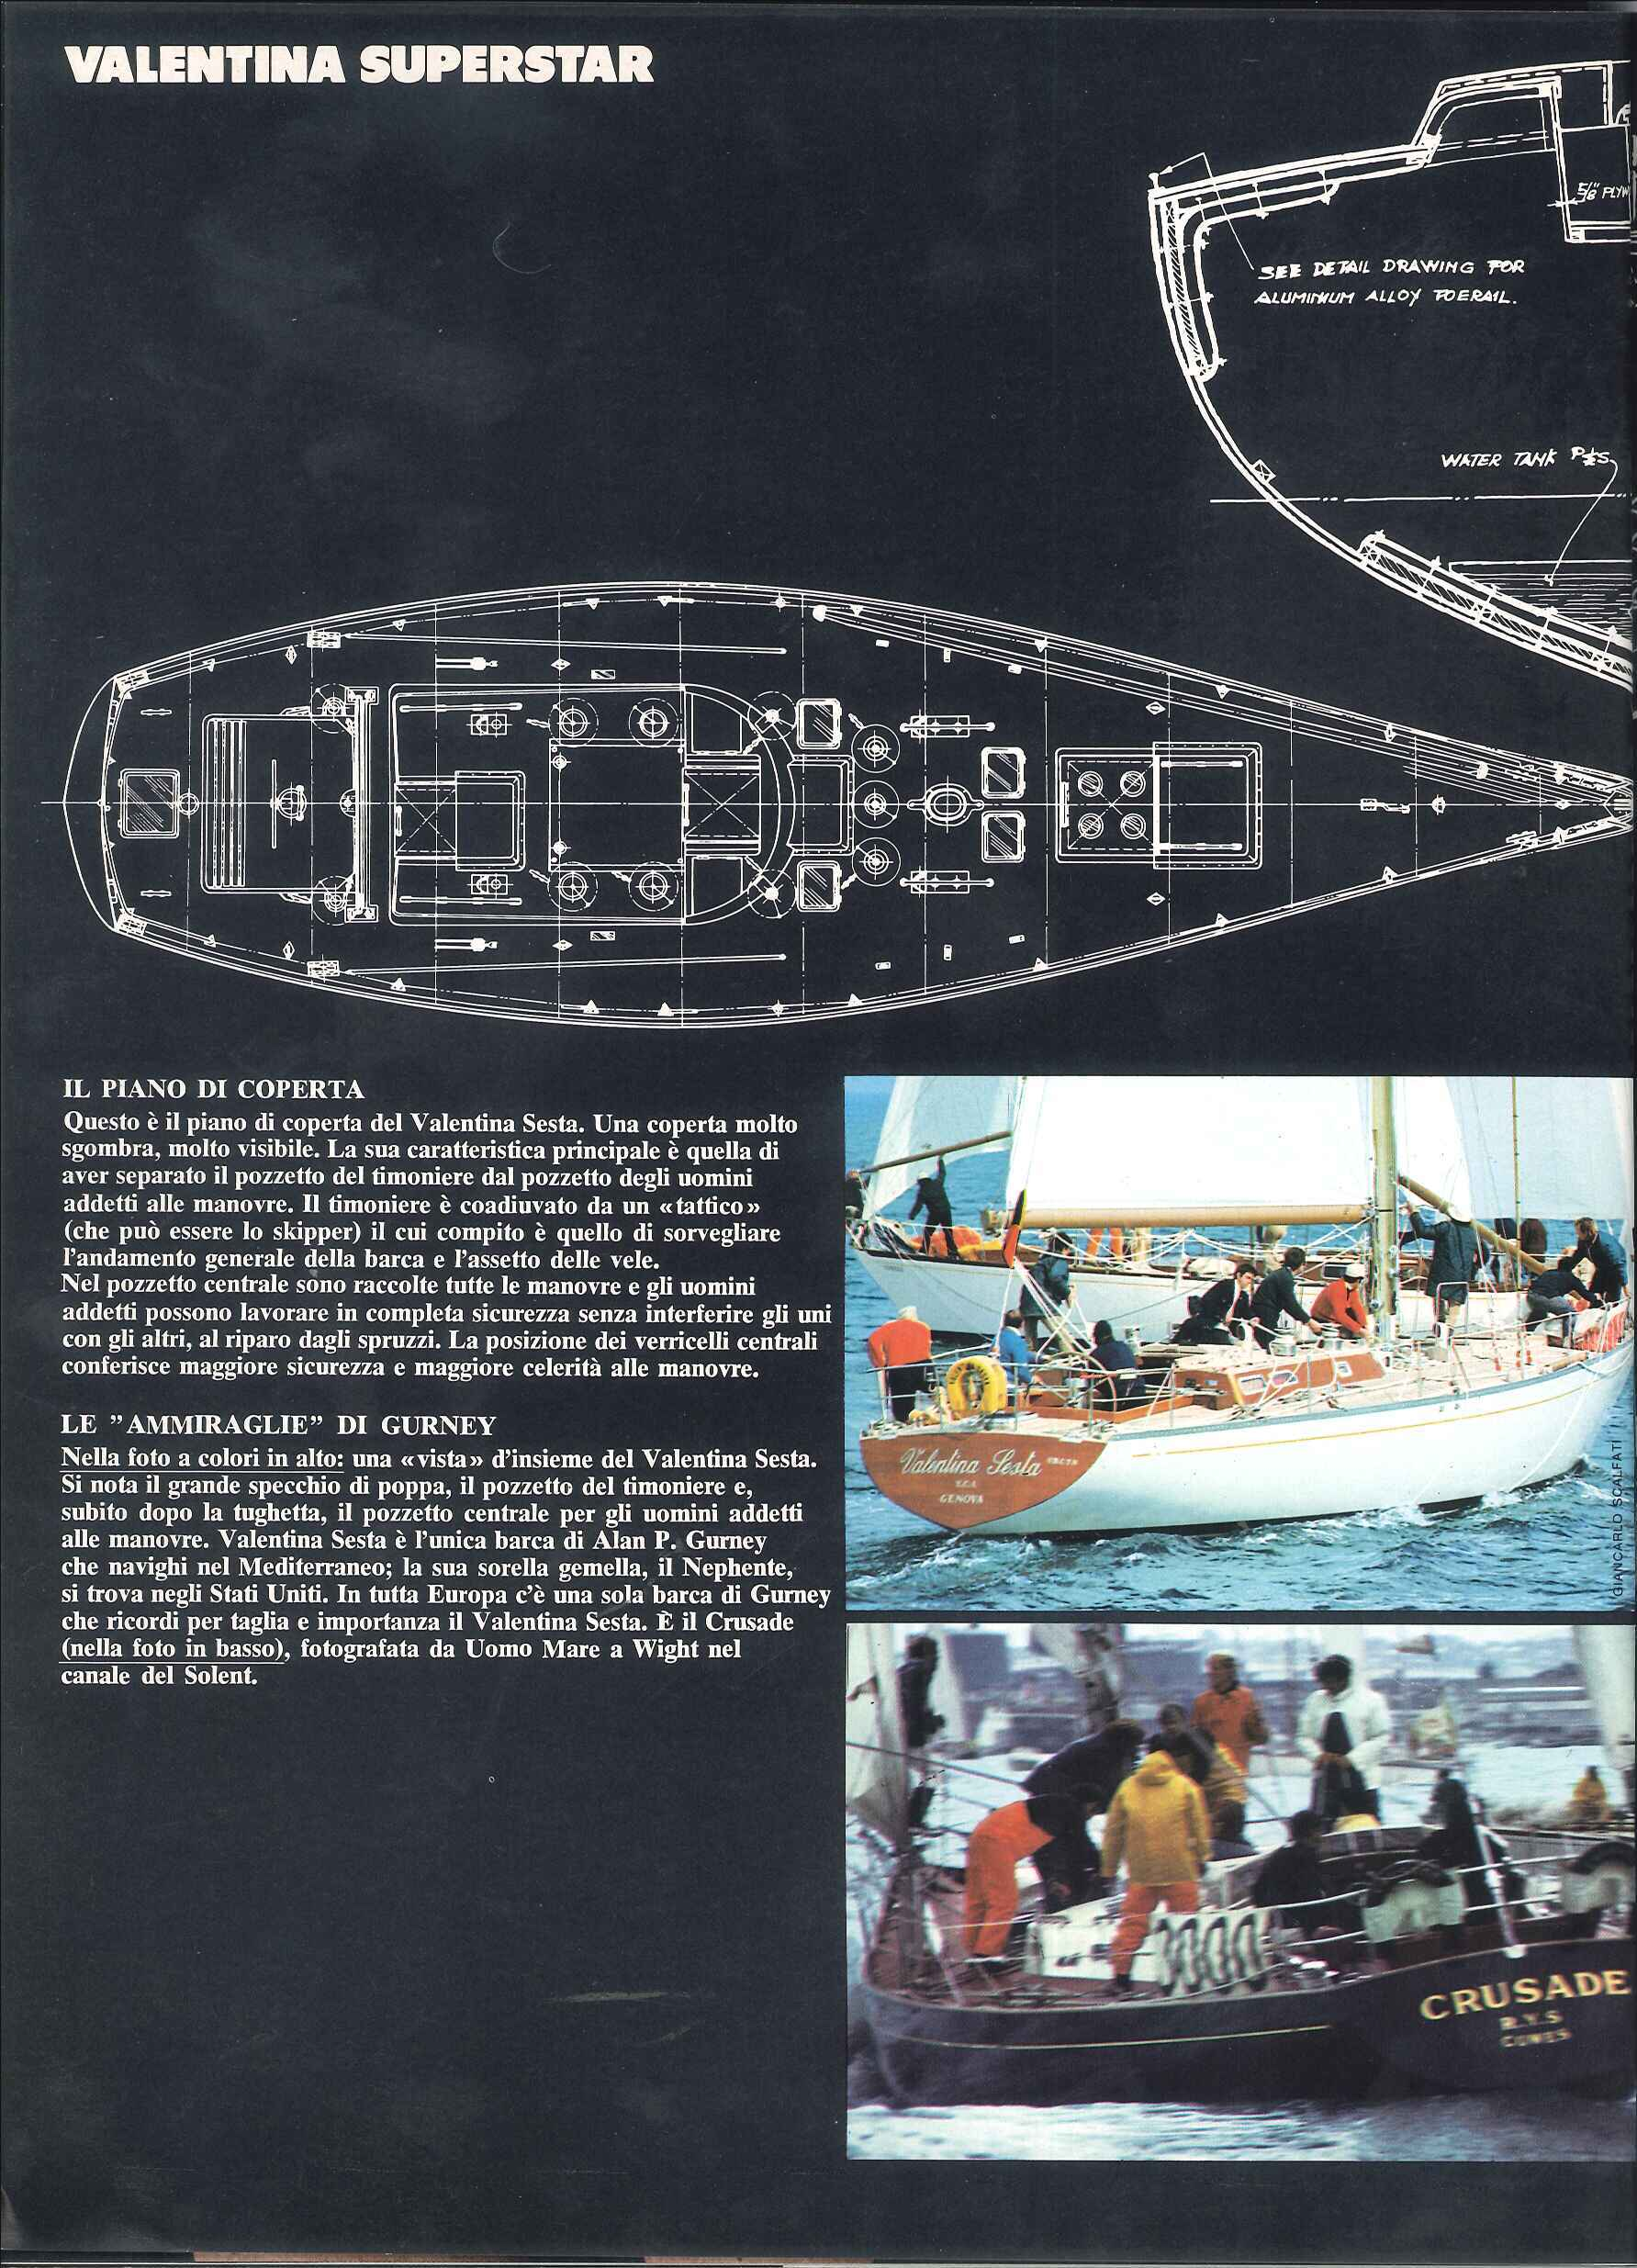 1973 06 PRESS SANGERMANI VALENTINA SESTA UOMO MARE 2 (4).jpg